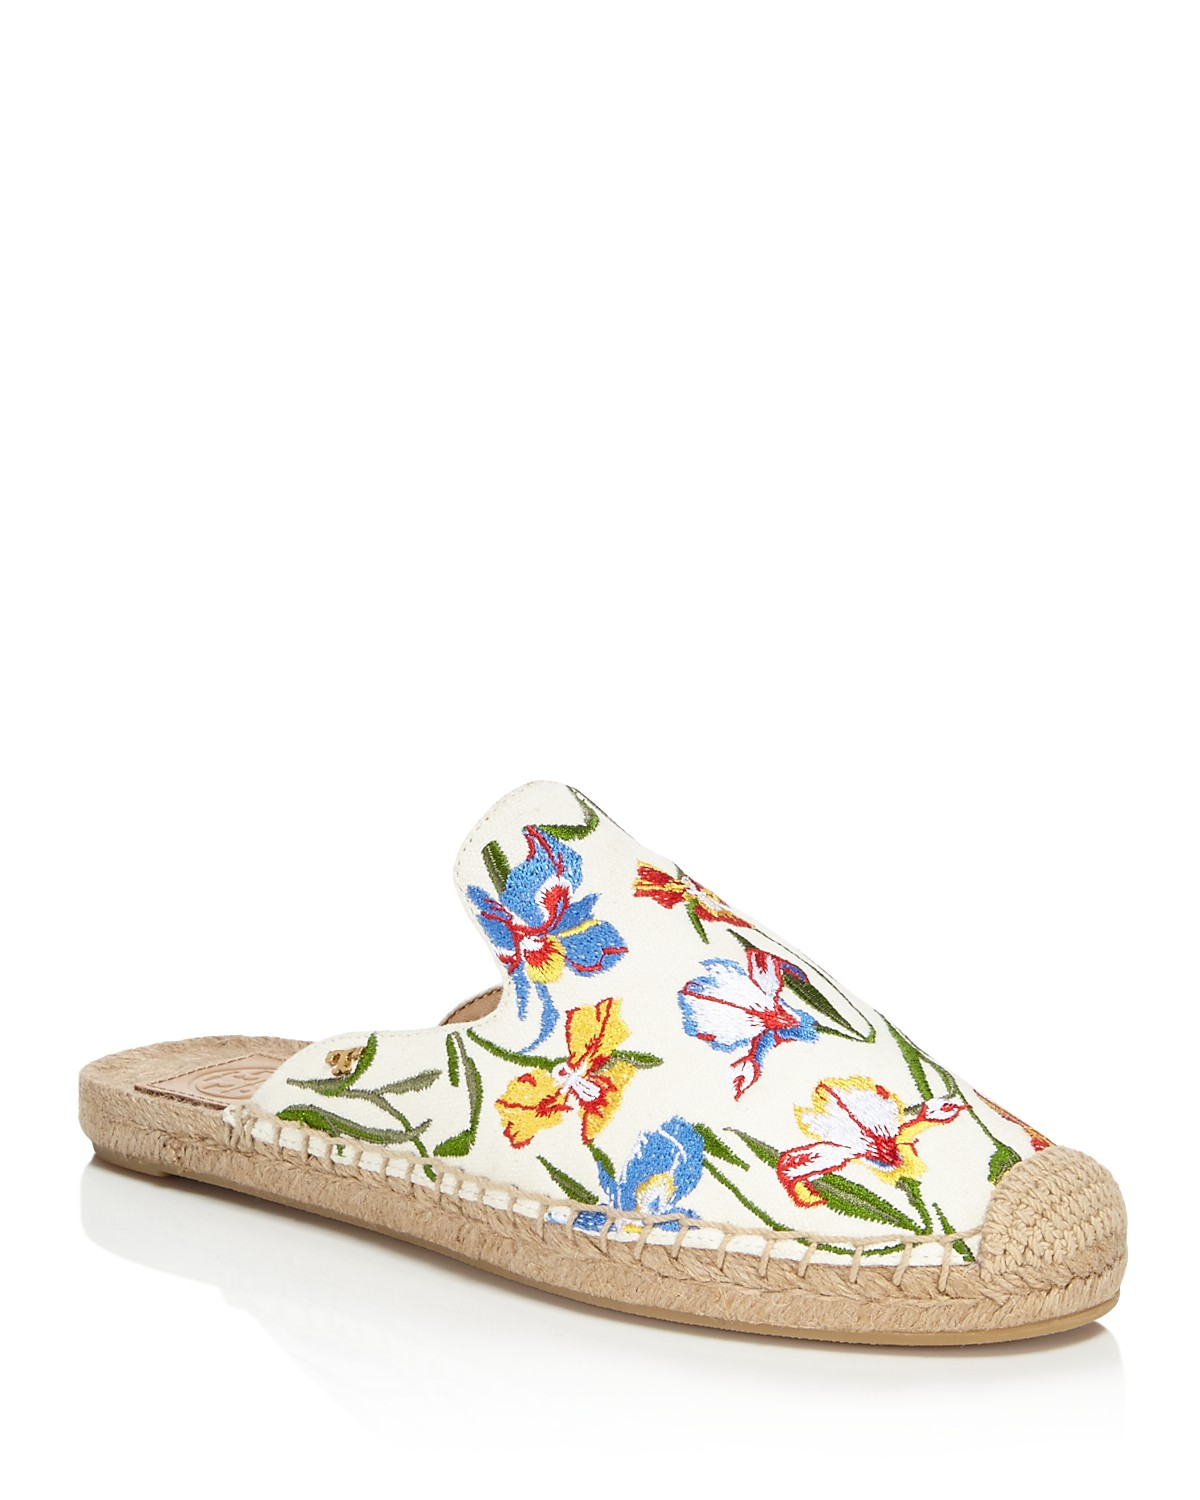 Tory Burch Women's Max Floral Embroidered Espadrille Mules hND73beJ